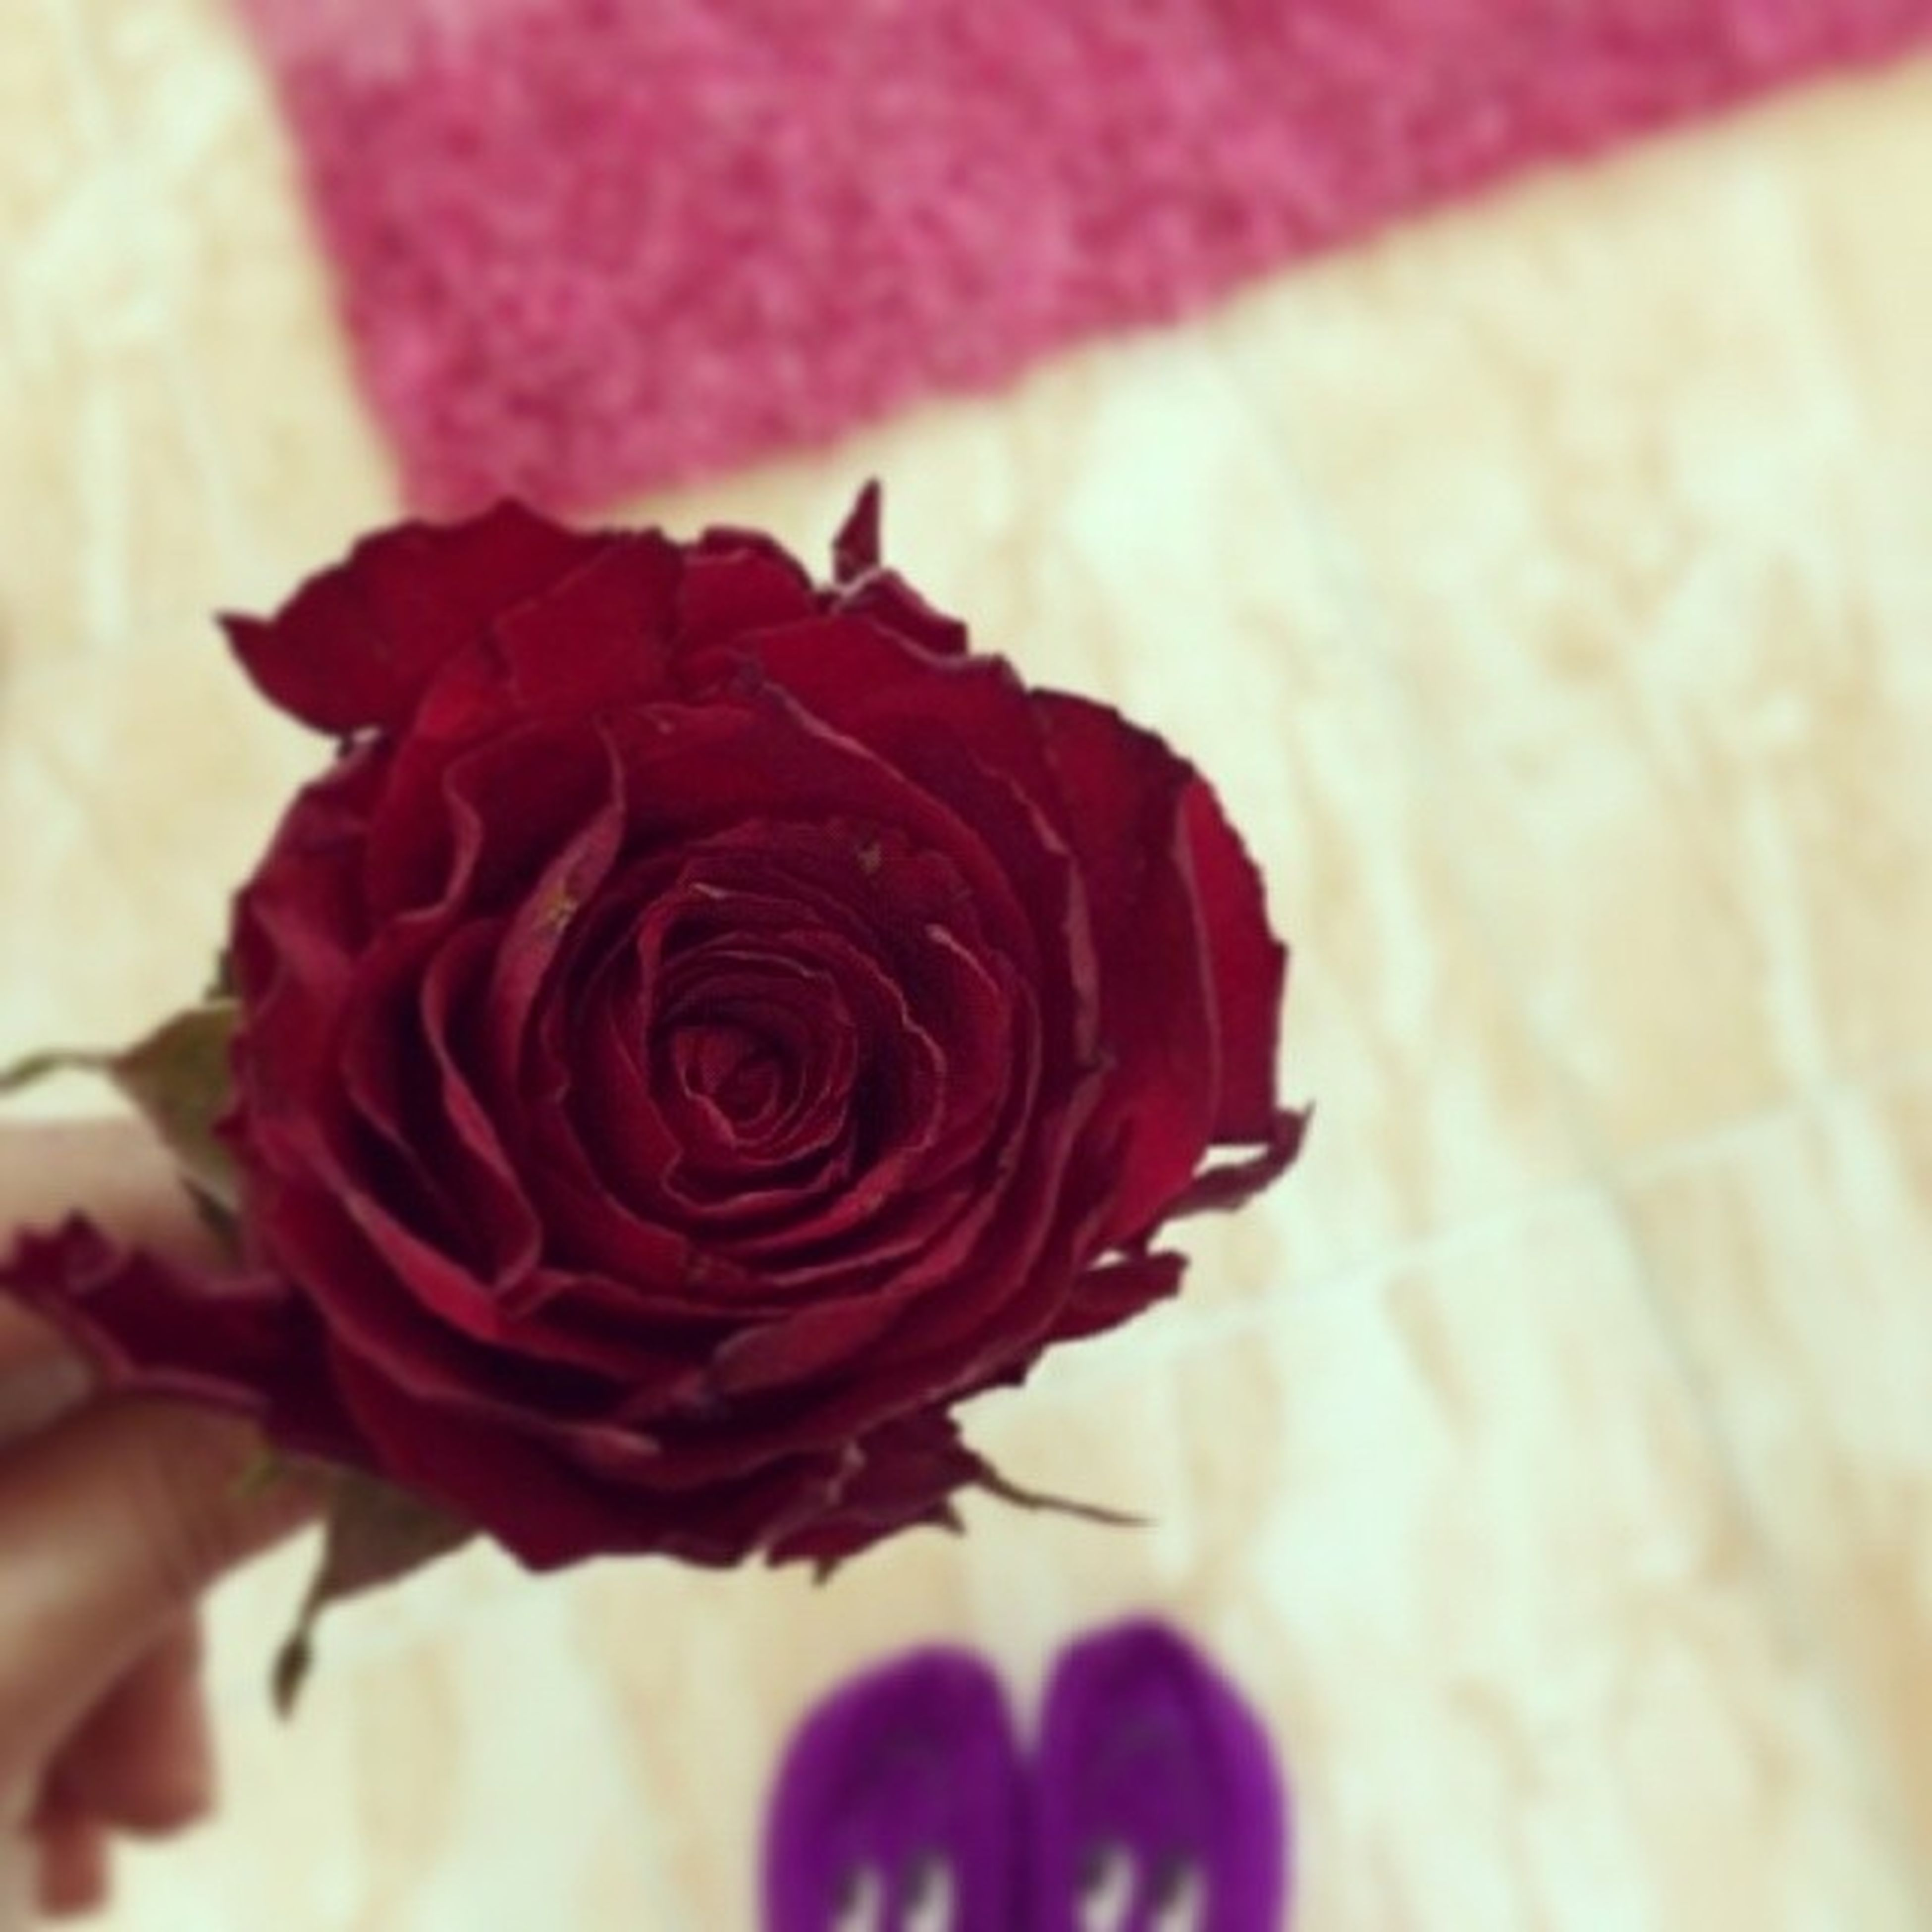 flower, petal, rose - flower, flower head, close-up, fragility, pink color, indoors, red, focus on foreground, single flower, freshness, rose, beauty in nature, selective focus, nature, softness, wall - building feature, part of, no people